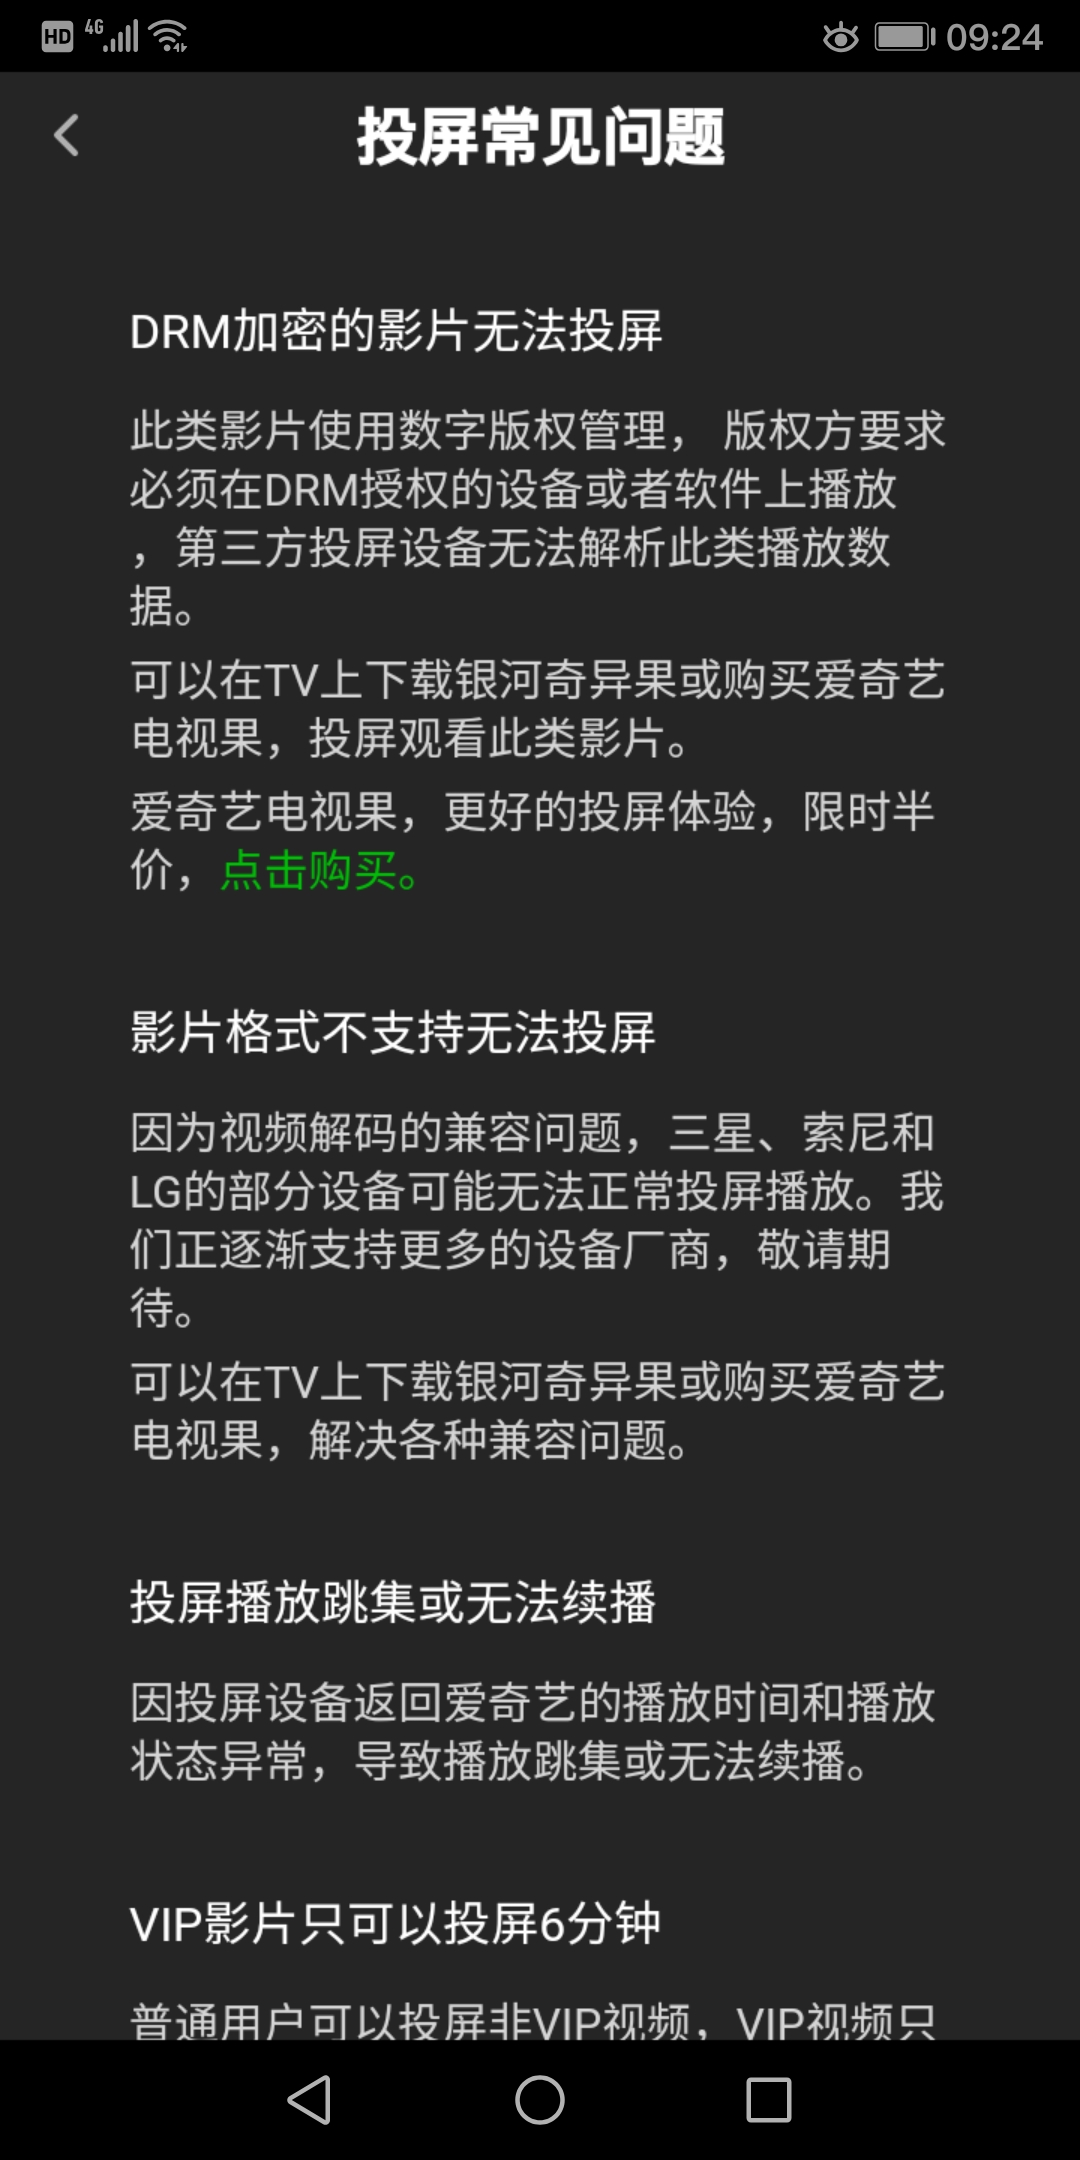 Screenshot_20190904_092431_com.qiyi.video.jpg